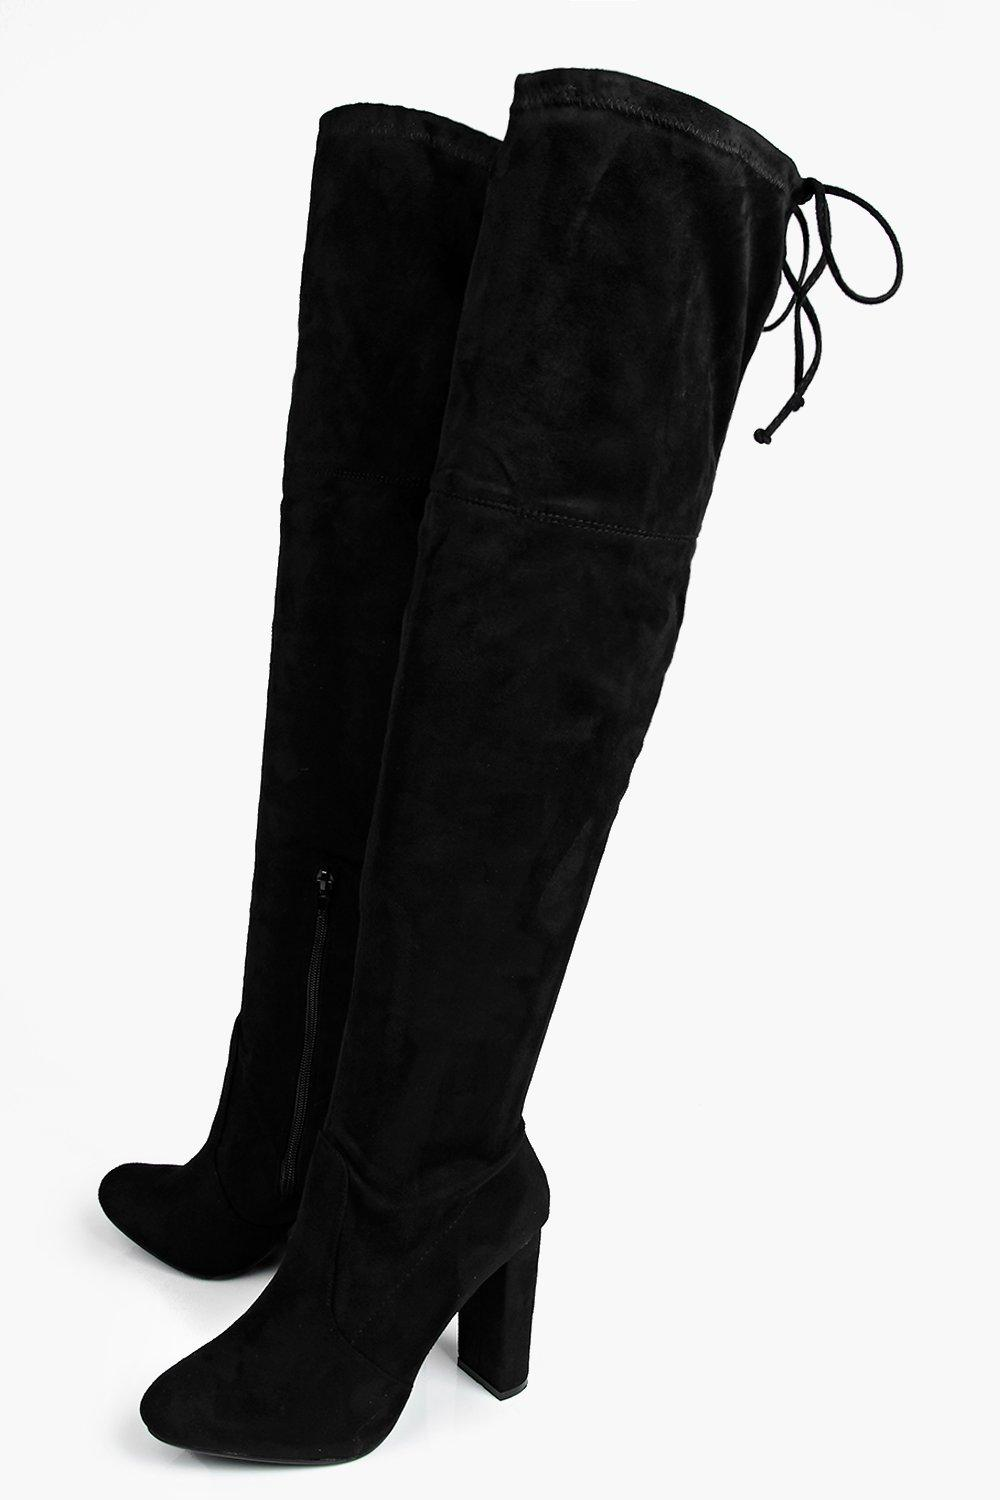 Mia Block Heel Lace Up Back Over Knee Boot | Boohoo